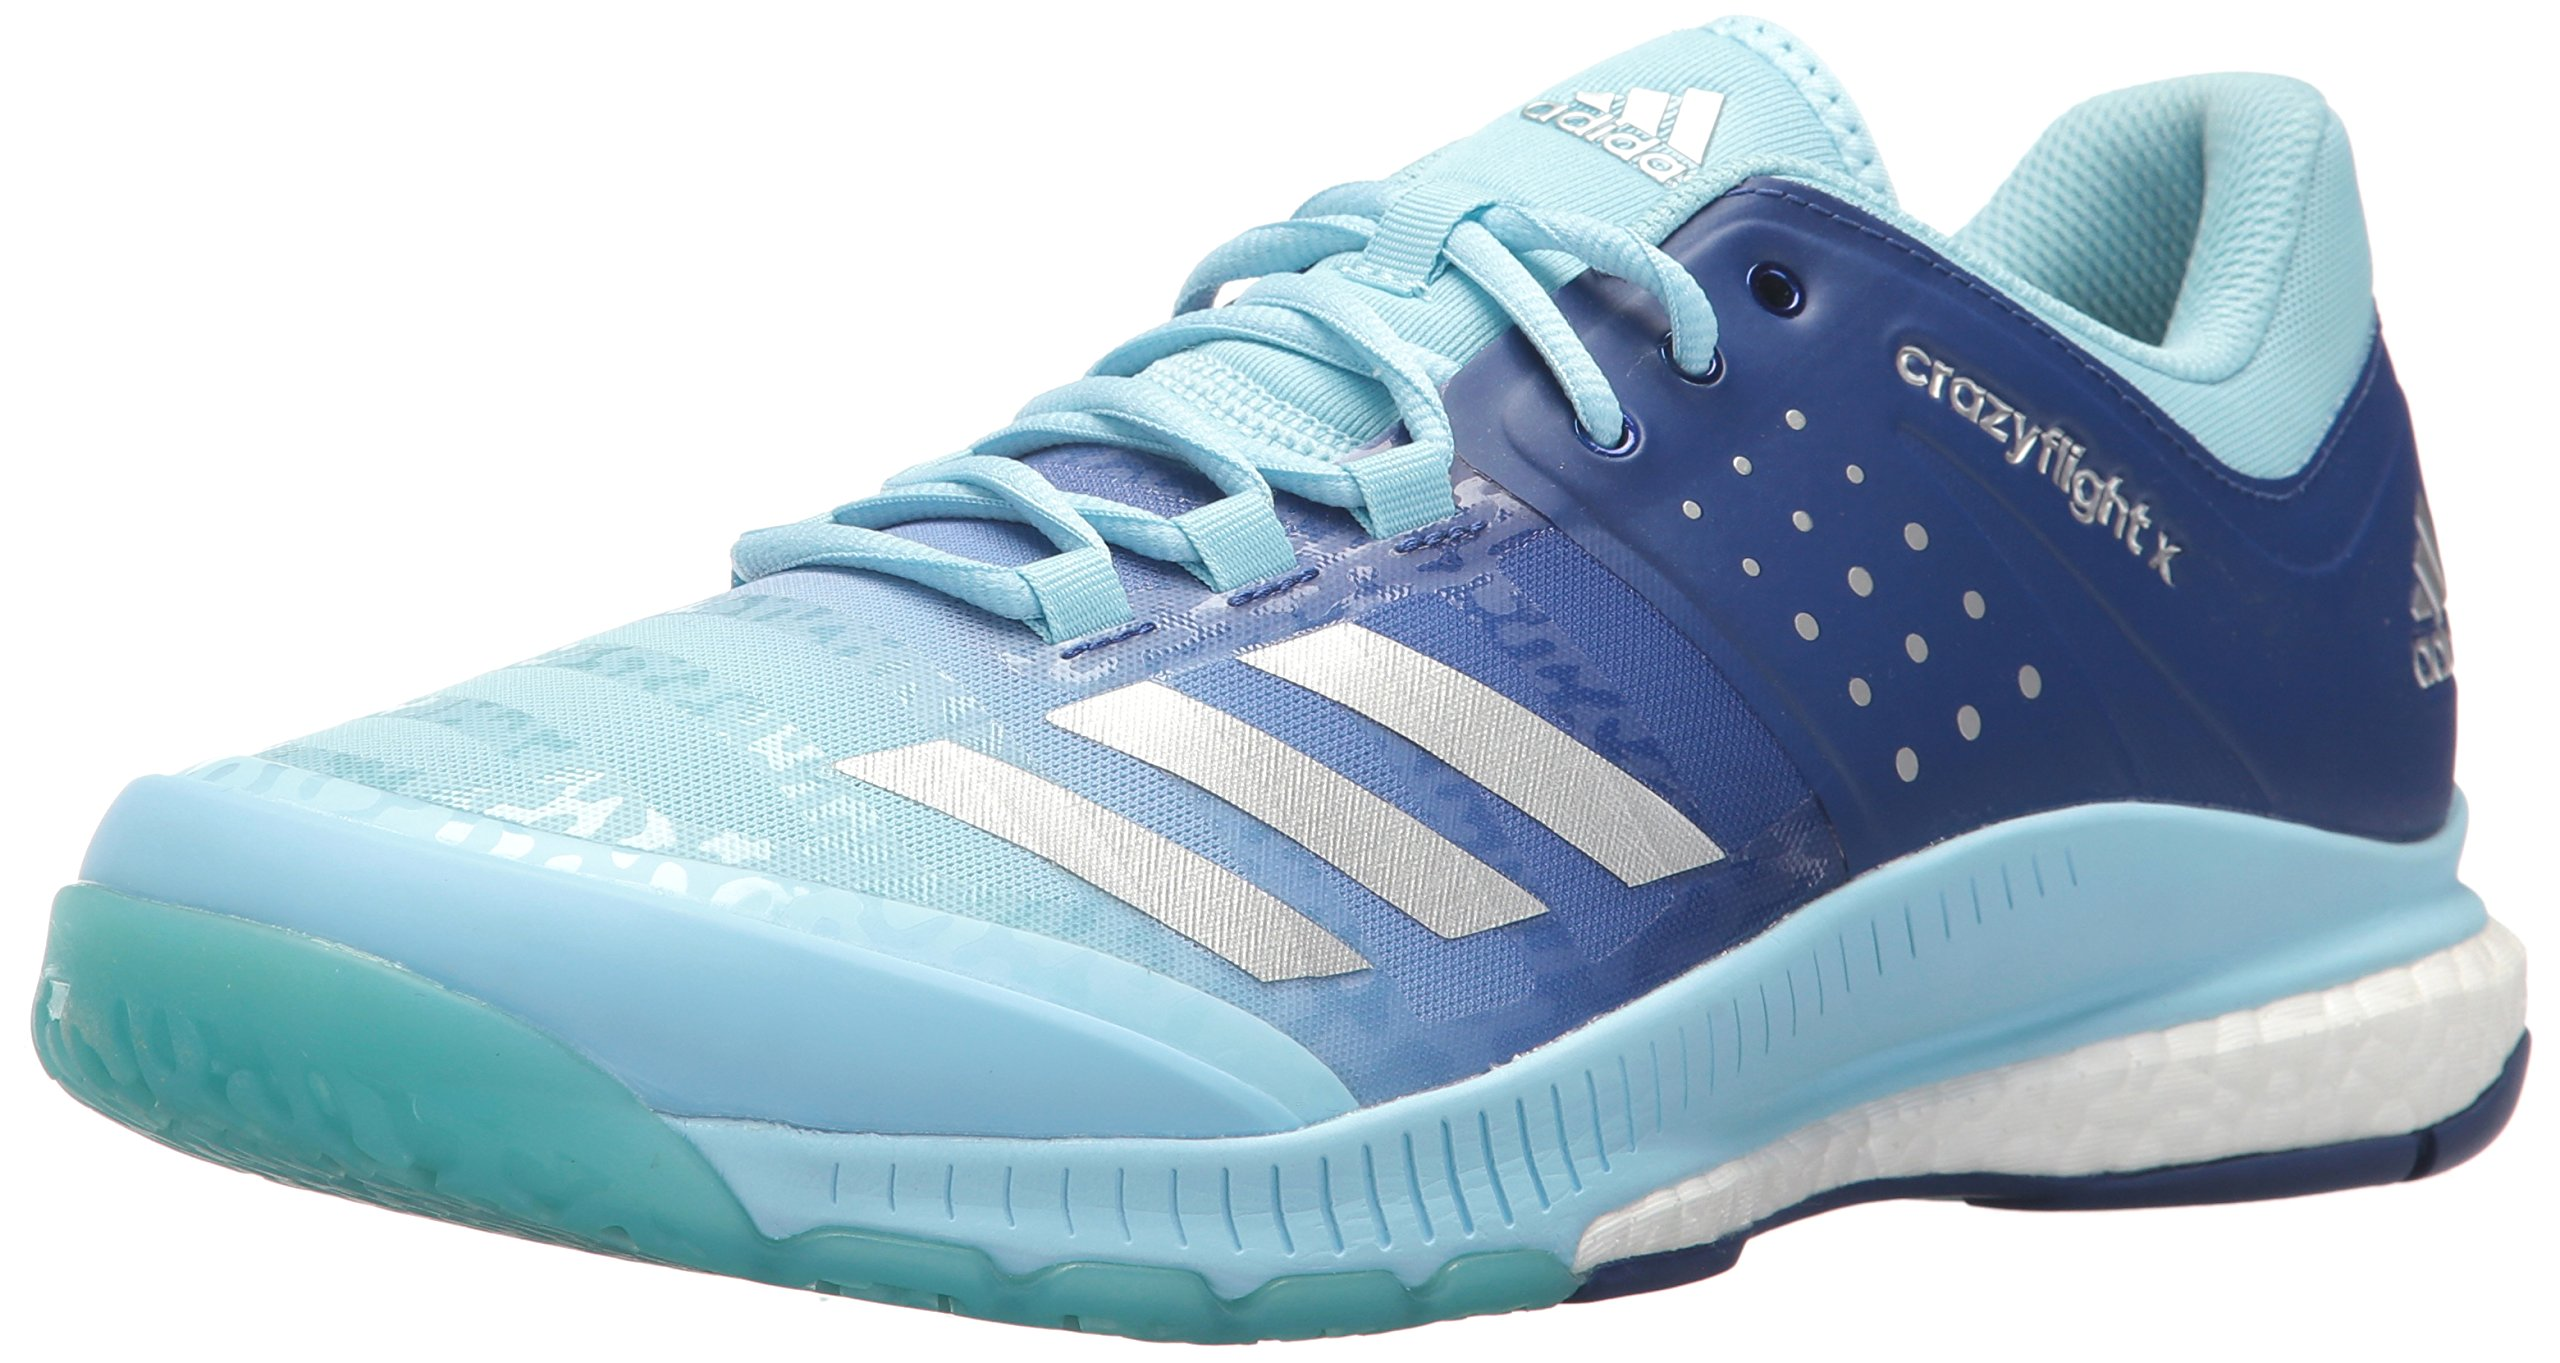 adidas Women's Shoes | Crazyflight X Volleyball Shoe - Ice Blue/Metallic Silver/Mystery Ink (7 M US)